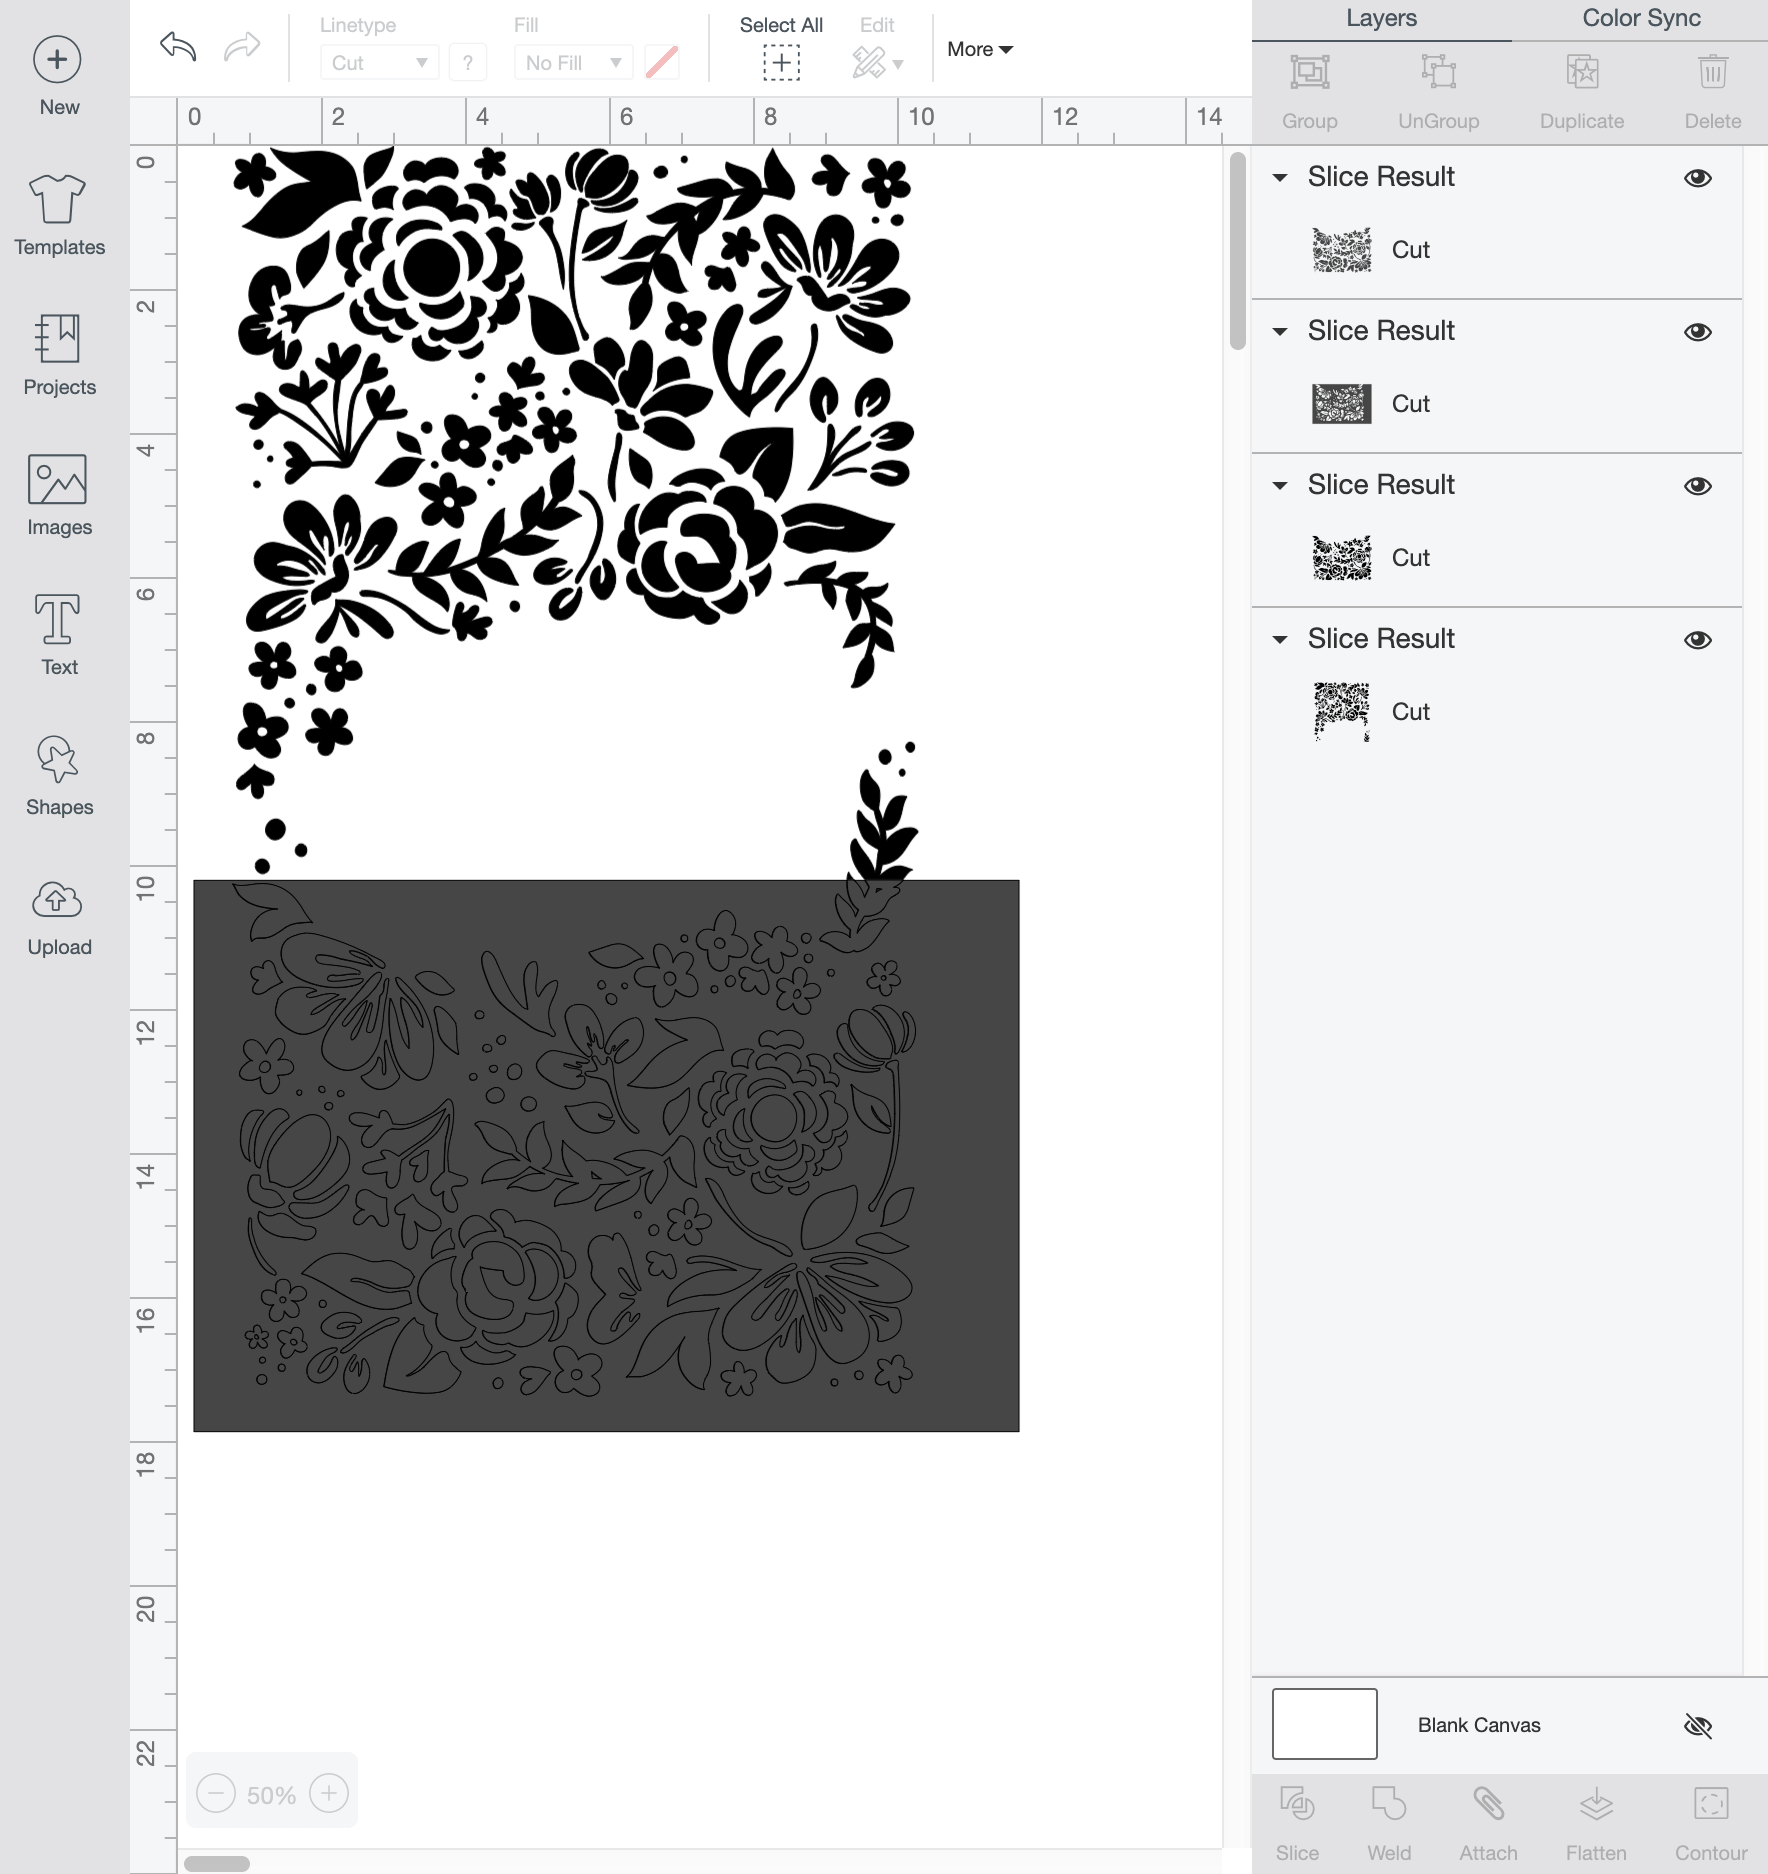 Screen shot of Cricut Design Space showing slice functionality.